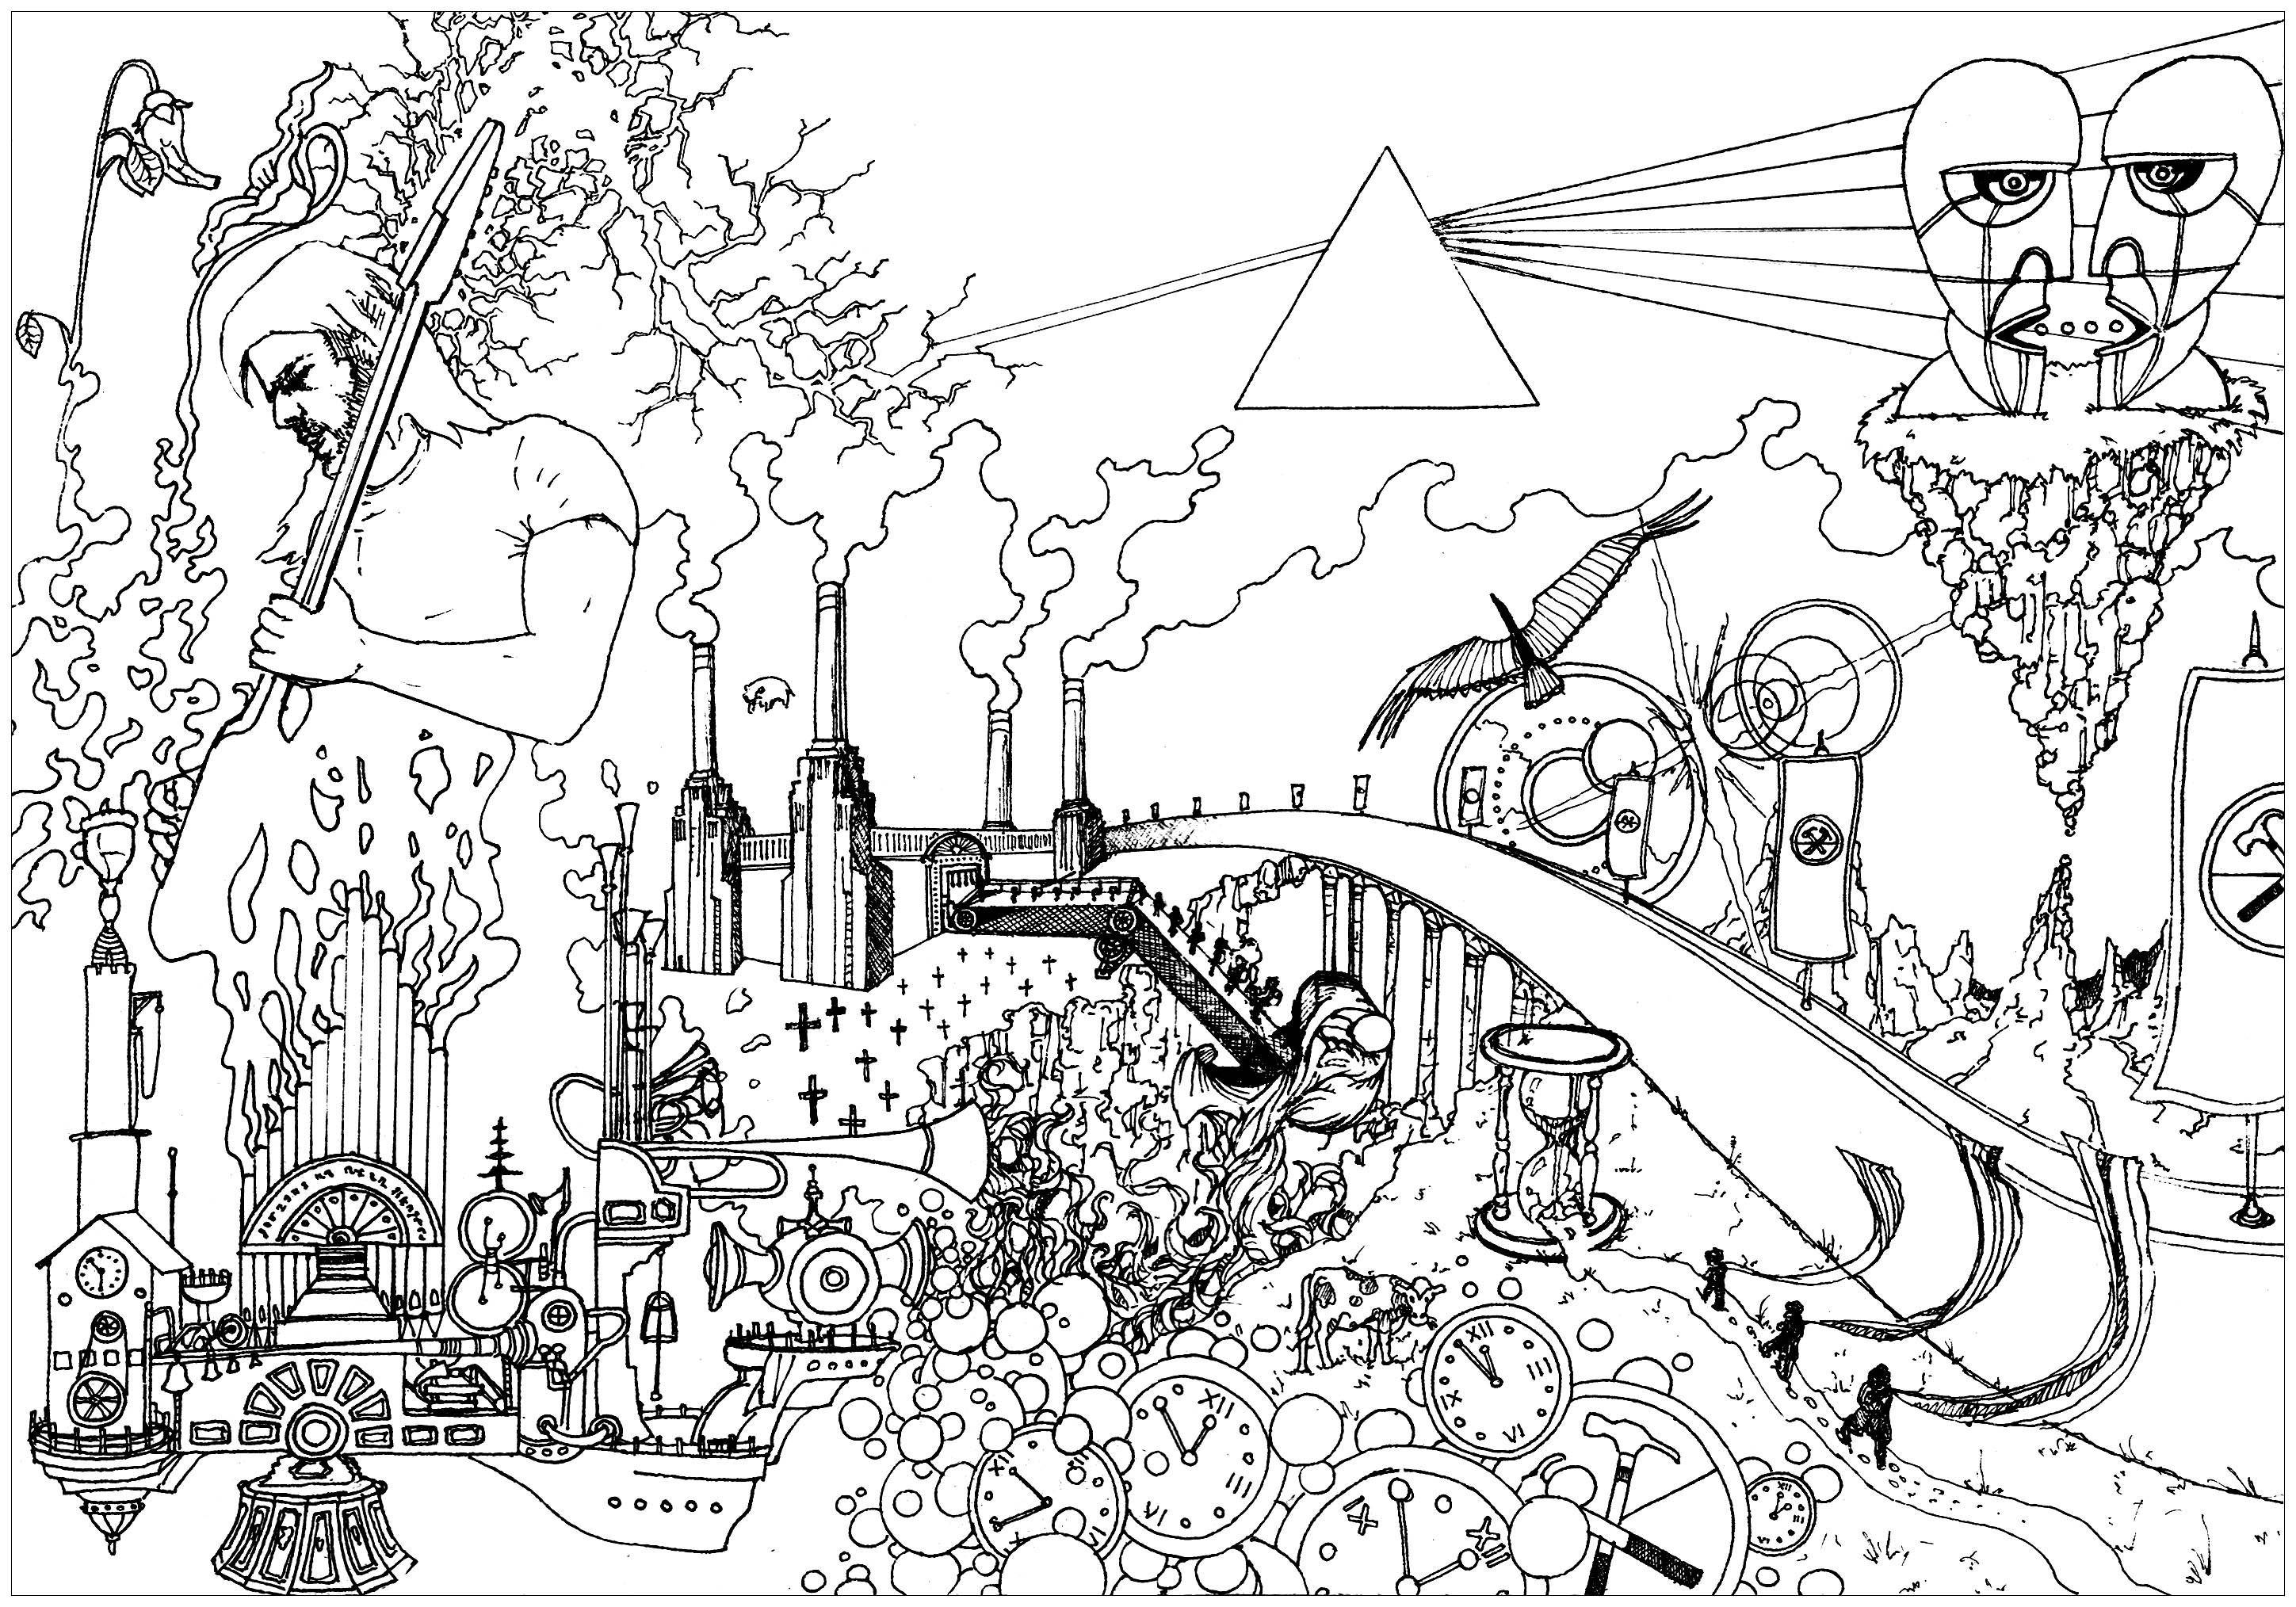 Coloring page inspired by the visual art of the band Pink Floyd